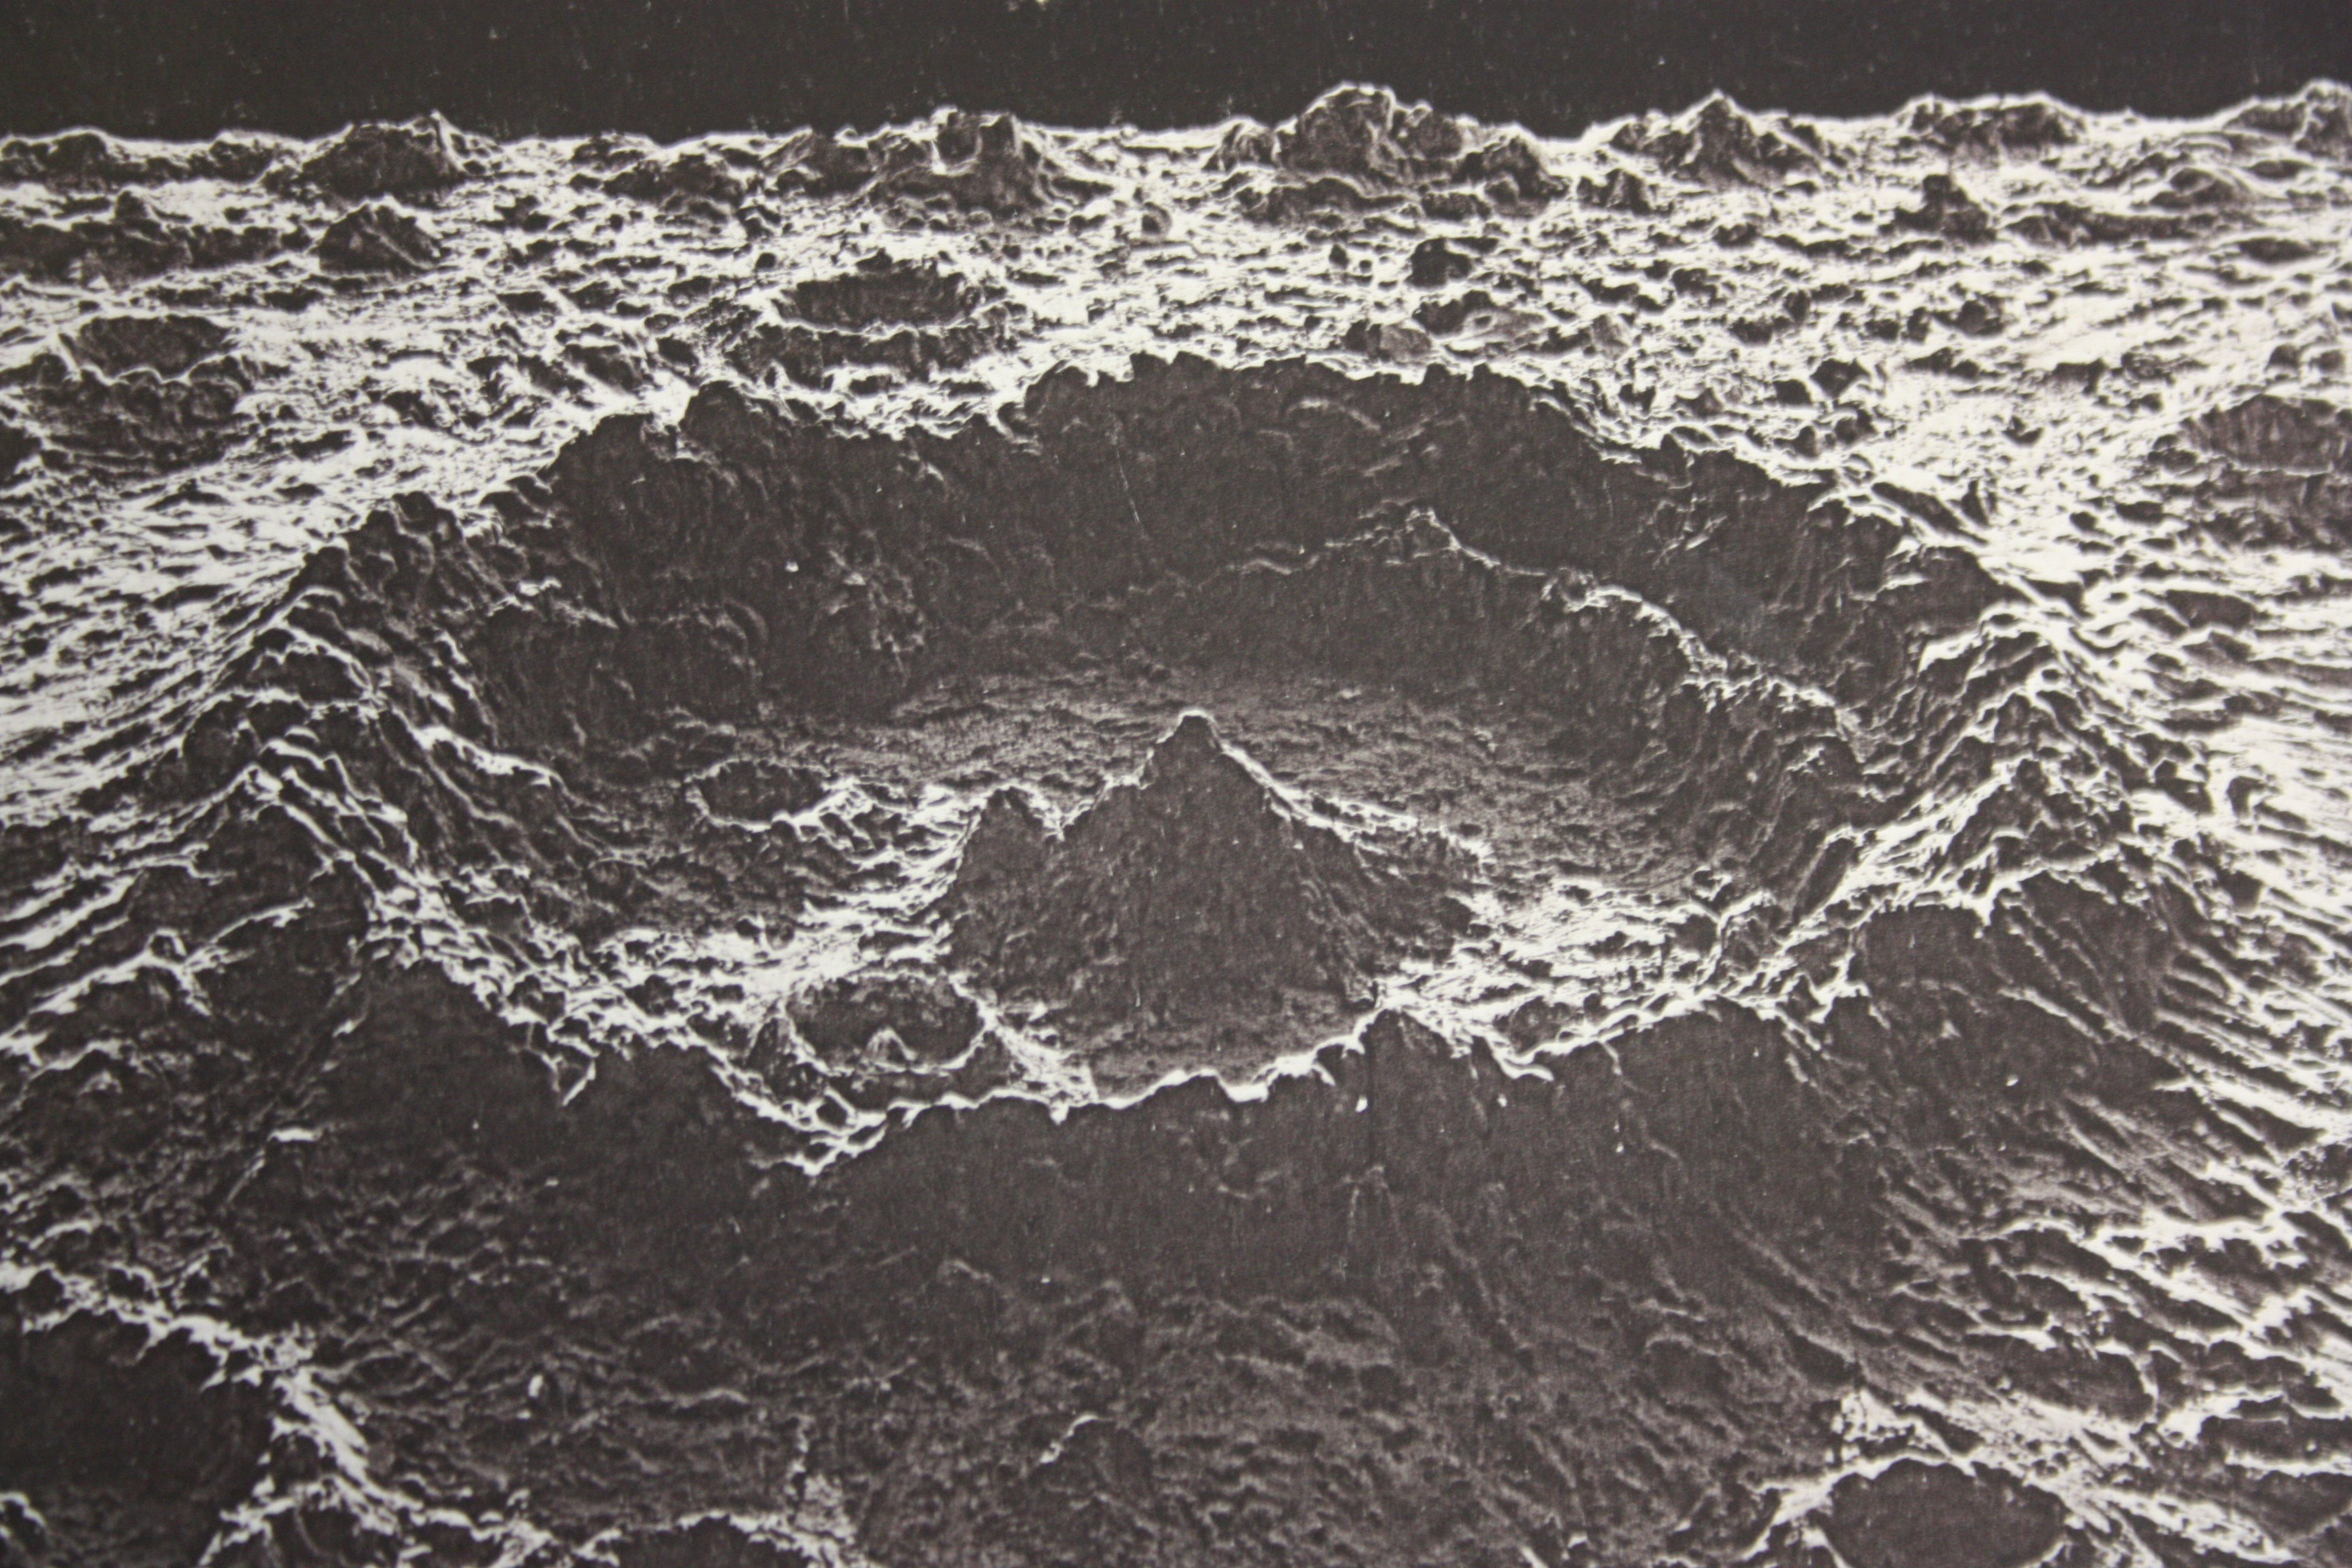 """Detail. Plate XXI in James Nasmyth and James Carpenter, The Moon: Considered as a Planet, a World, and a Satellite (London: John Murray, Albemarle Street, 1874), University of St Andrews Library, Photo QB581.N2C2"""